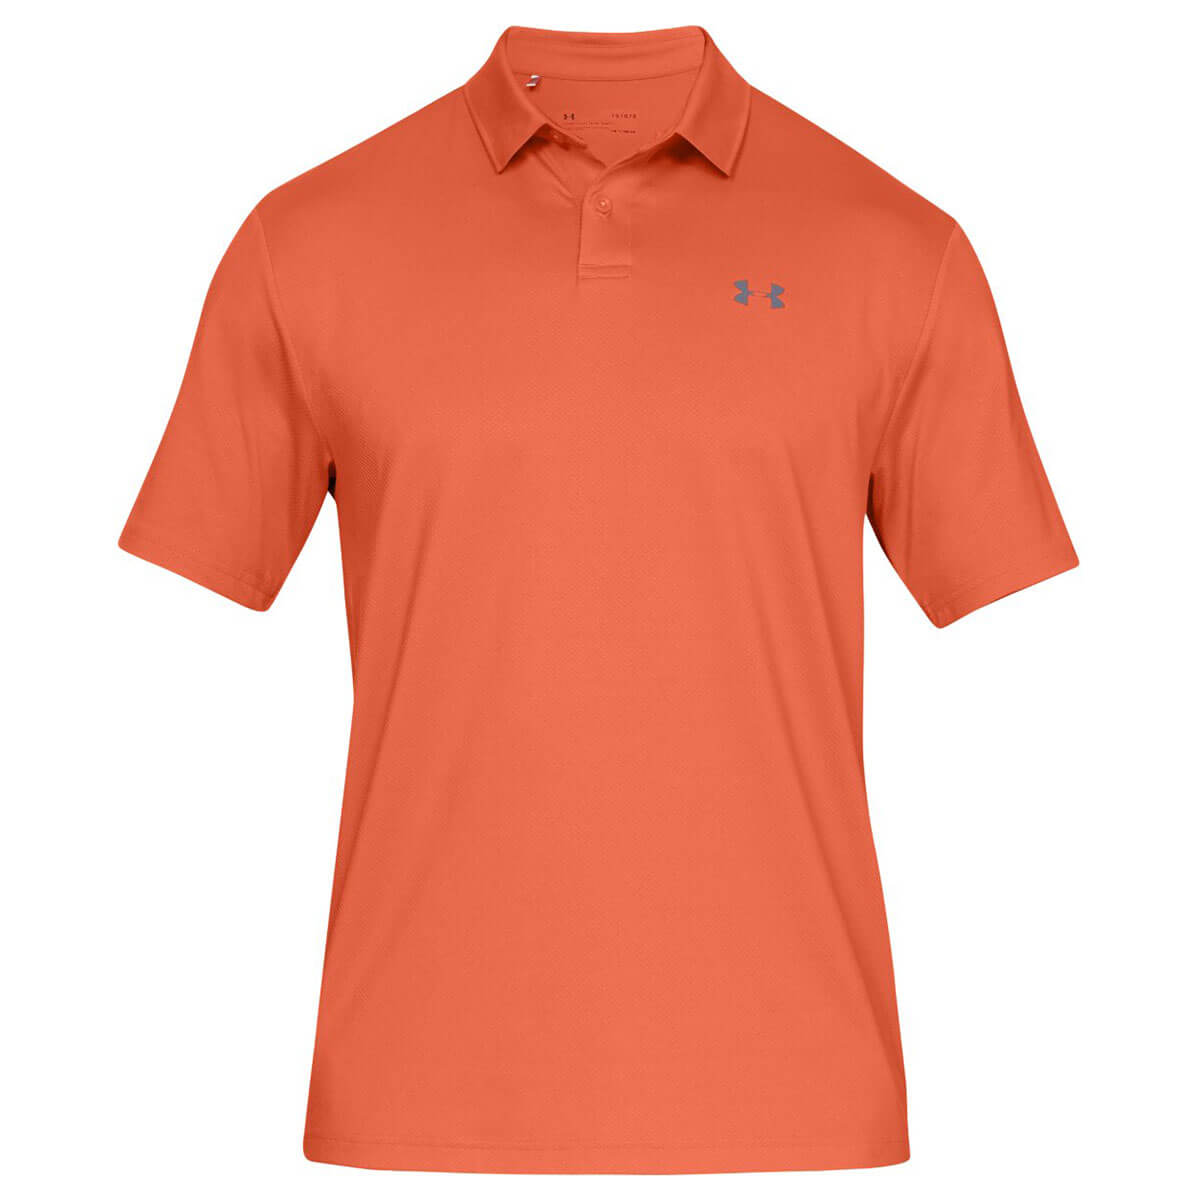 Under-Armour-Mens-2019-Performance-2-0-Stretch-Durable-Smooth-Golf-Polo-Shirt thumbnail 32